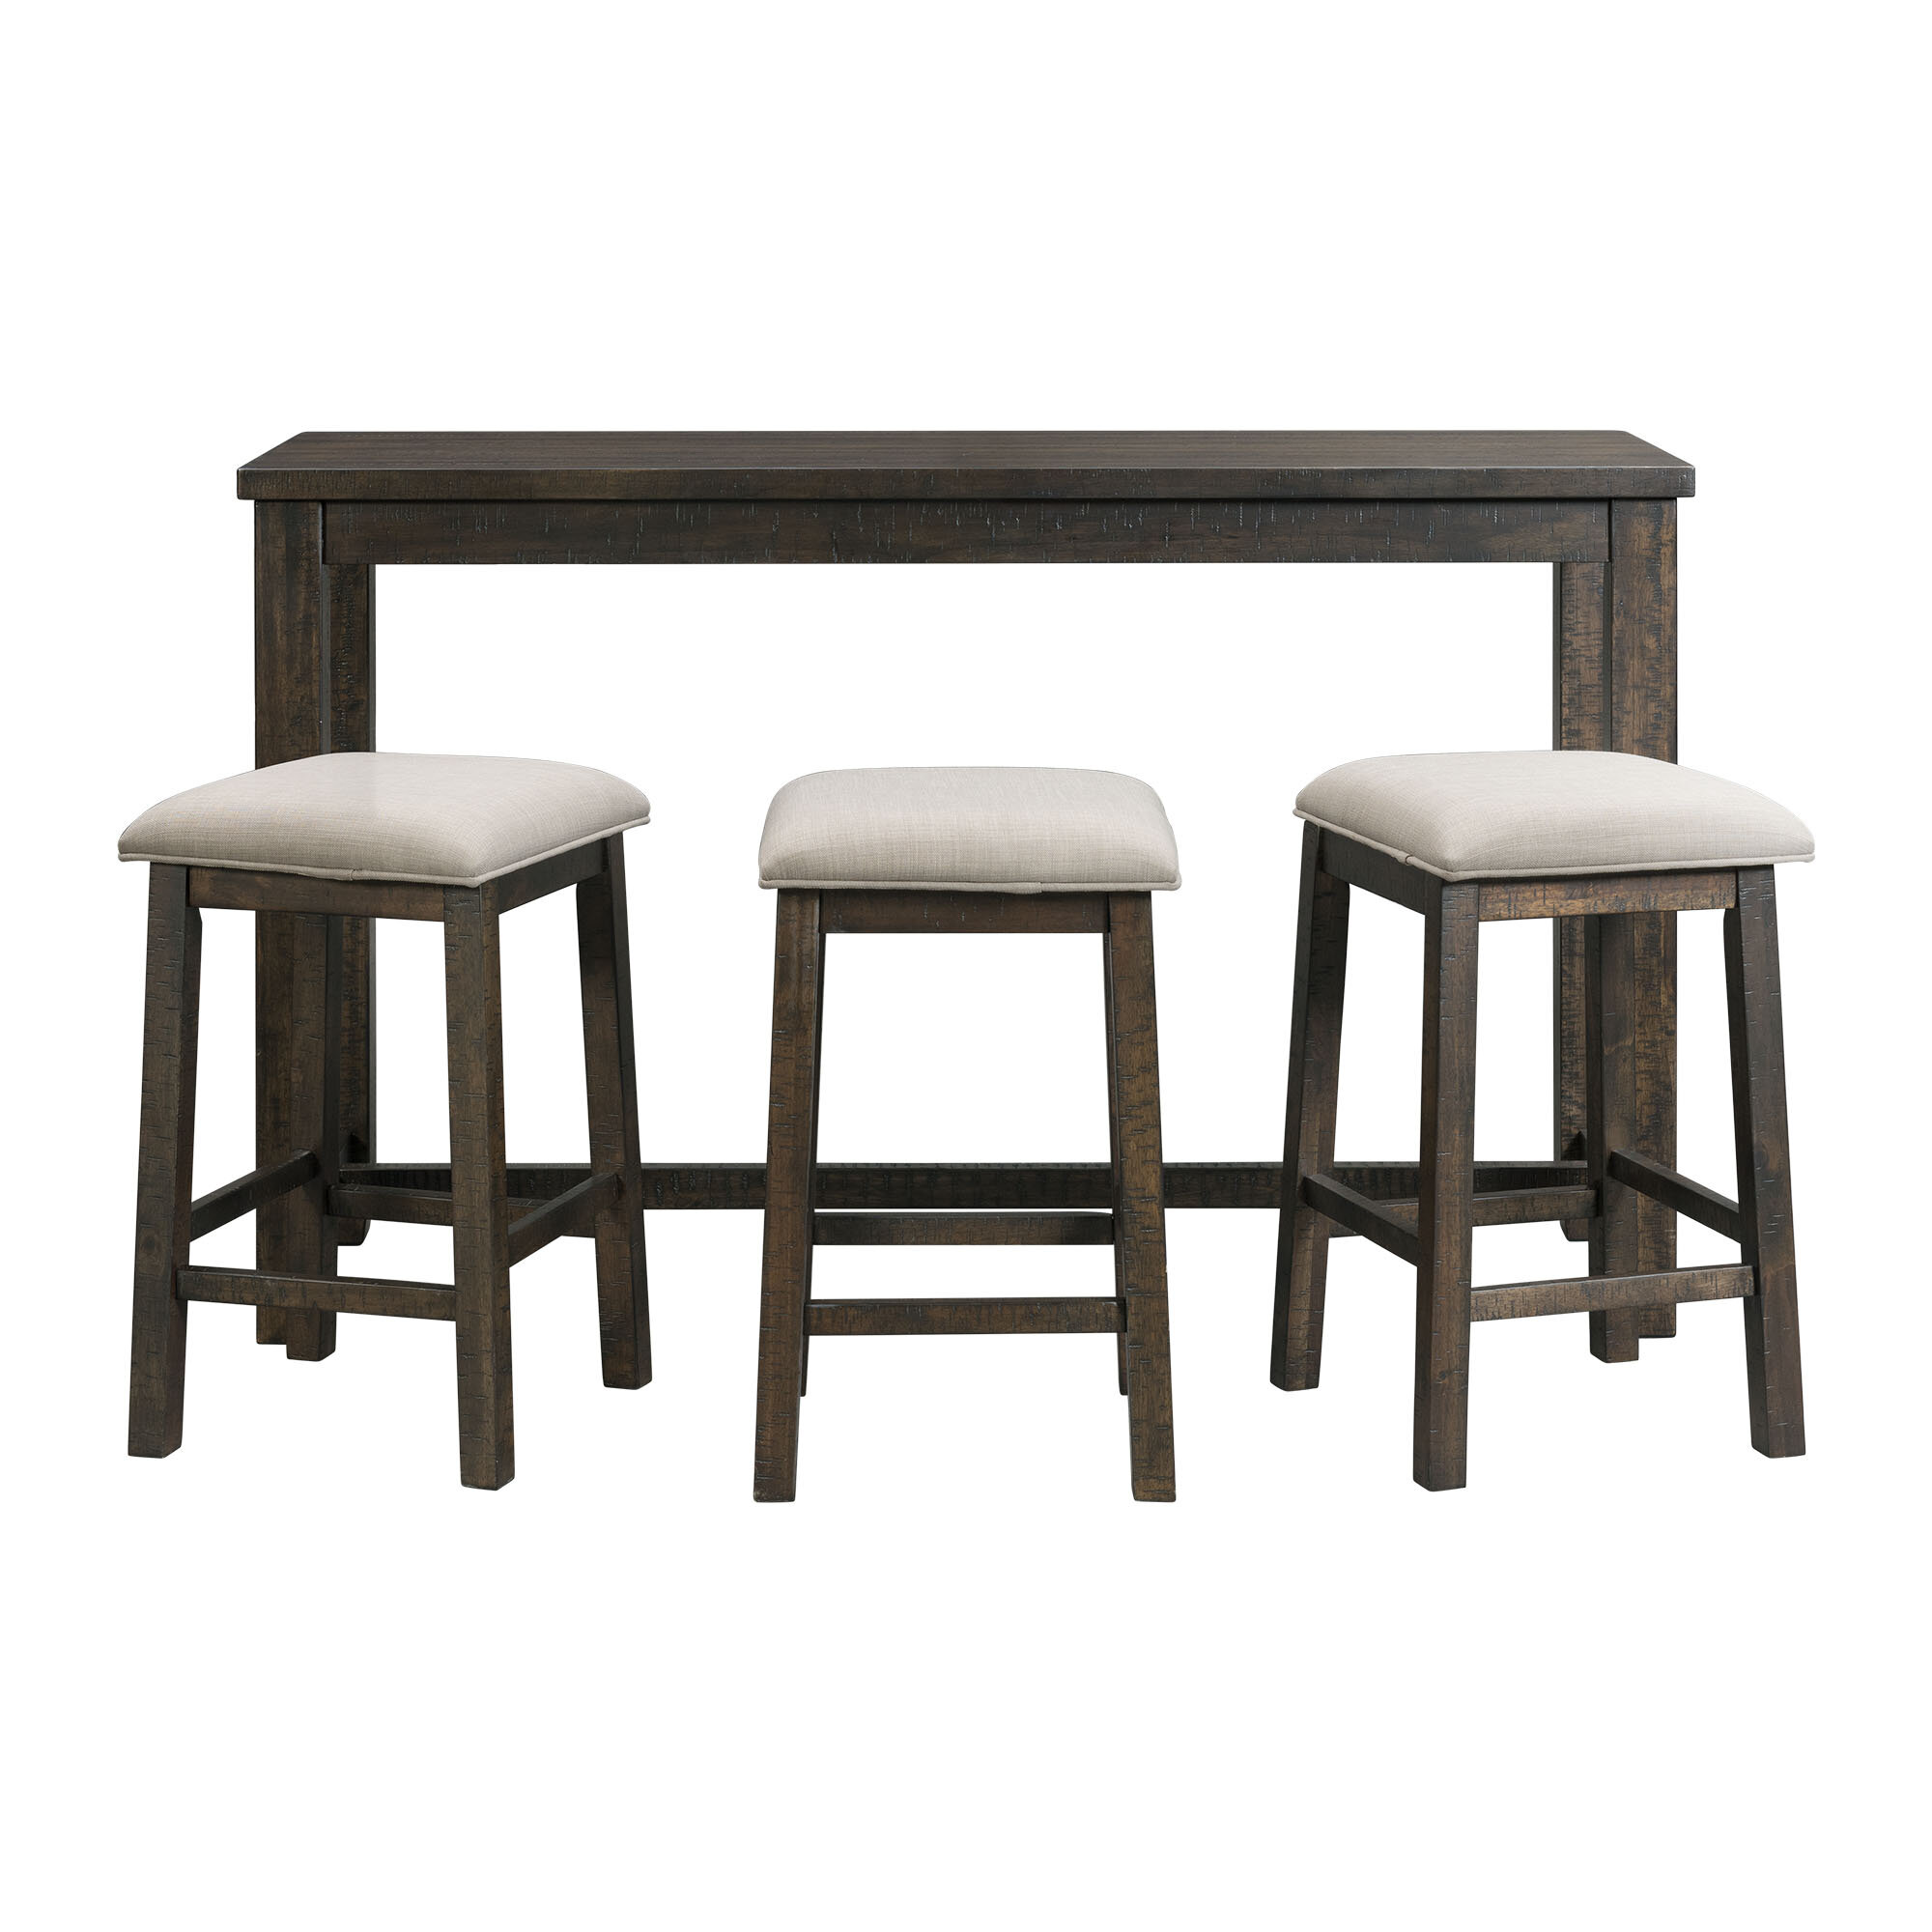 Miraculous Kentwood Multi Purpose 4 Piece Pub Table Set Interior Design Ideas Greaswefileorg